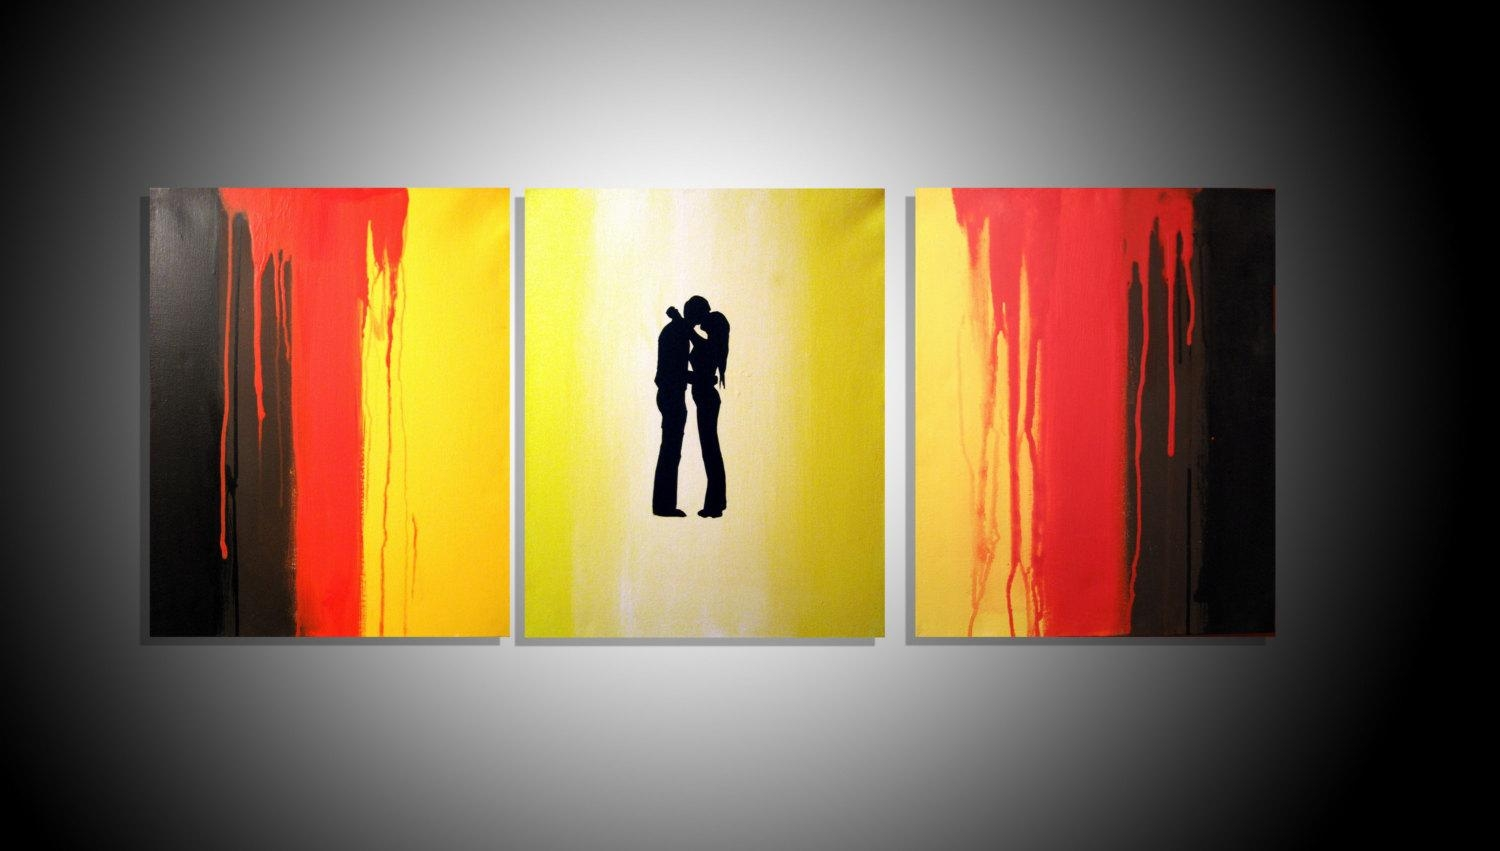 Enchanting Triptych Wall Art Illustration - Art & Wall Decor ...